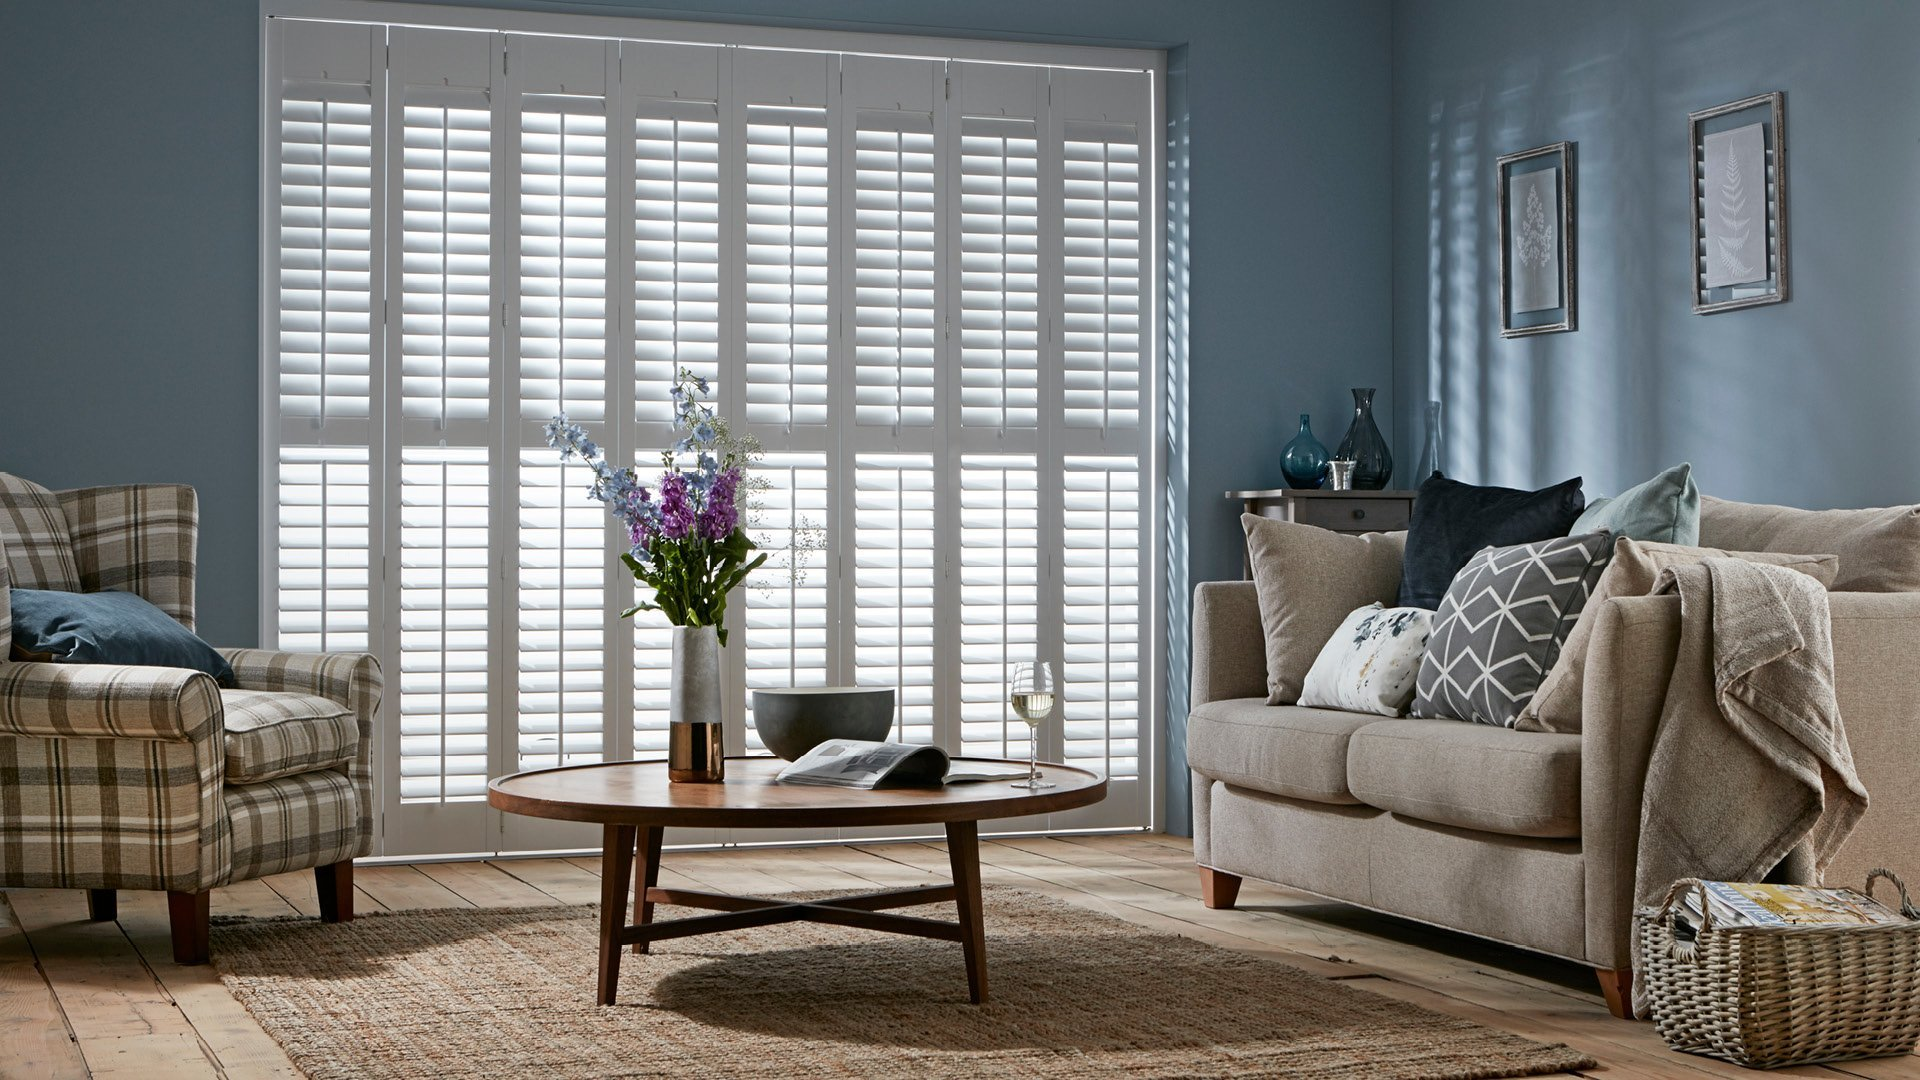 Full Height tracked shutters closed by Shutterstyle